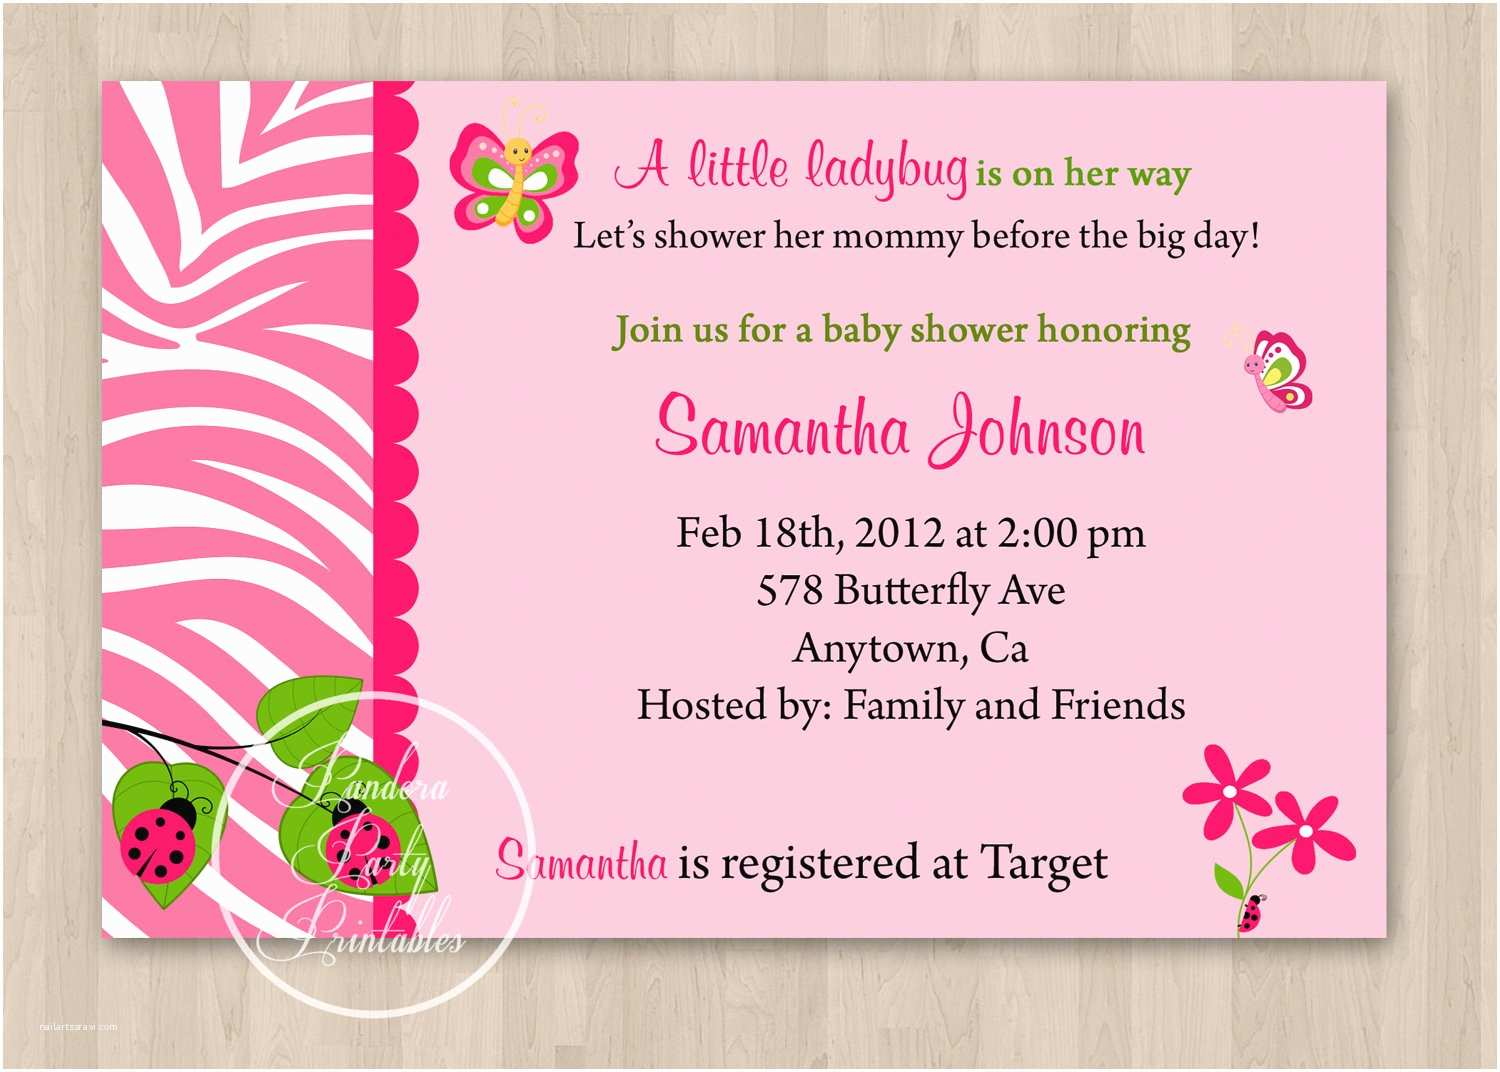 Invitations for Baby Shower Design butterfly Baby Shower Invitations Wording